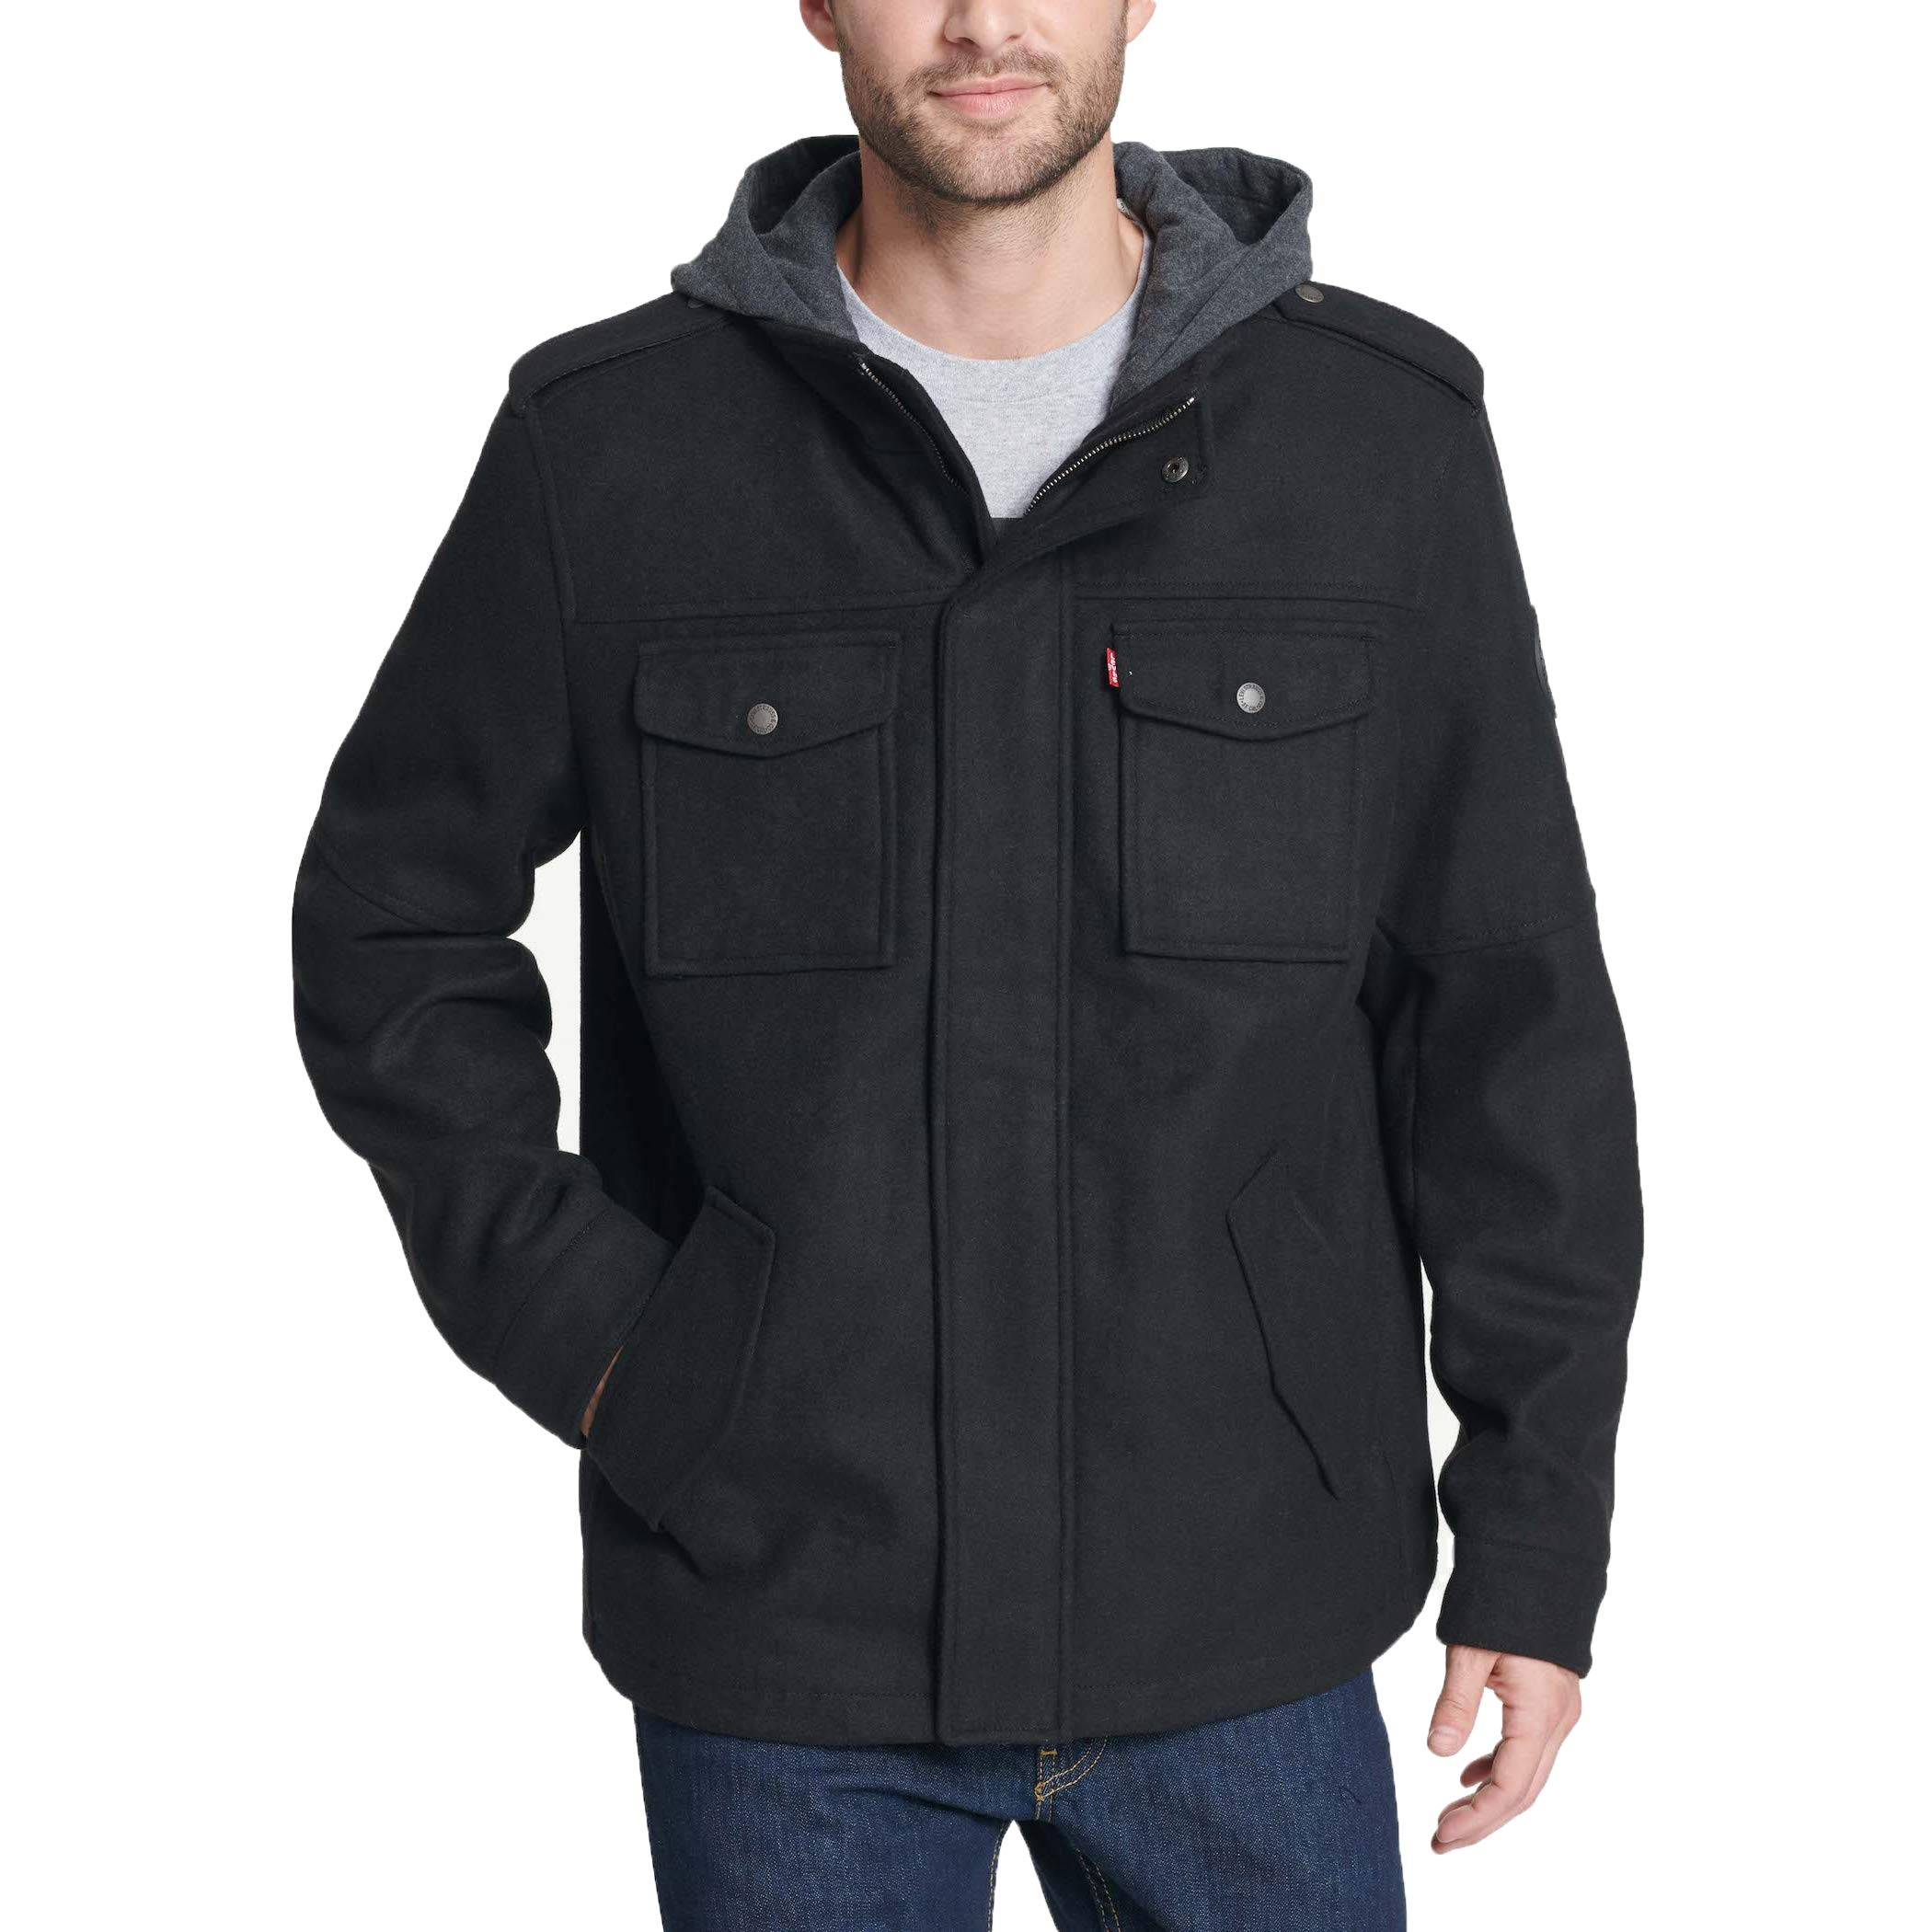 Levi's Men's Wool Blend Military Jacket with Hood, Black, Large by Levi's